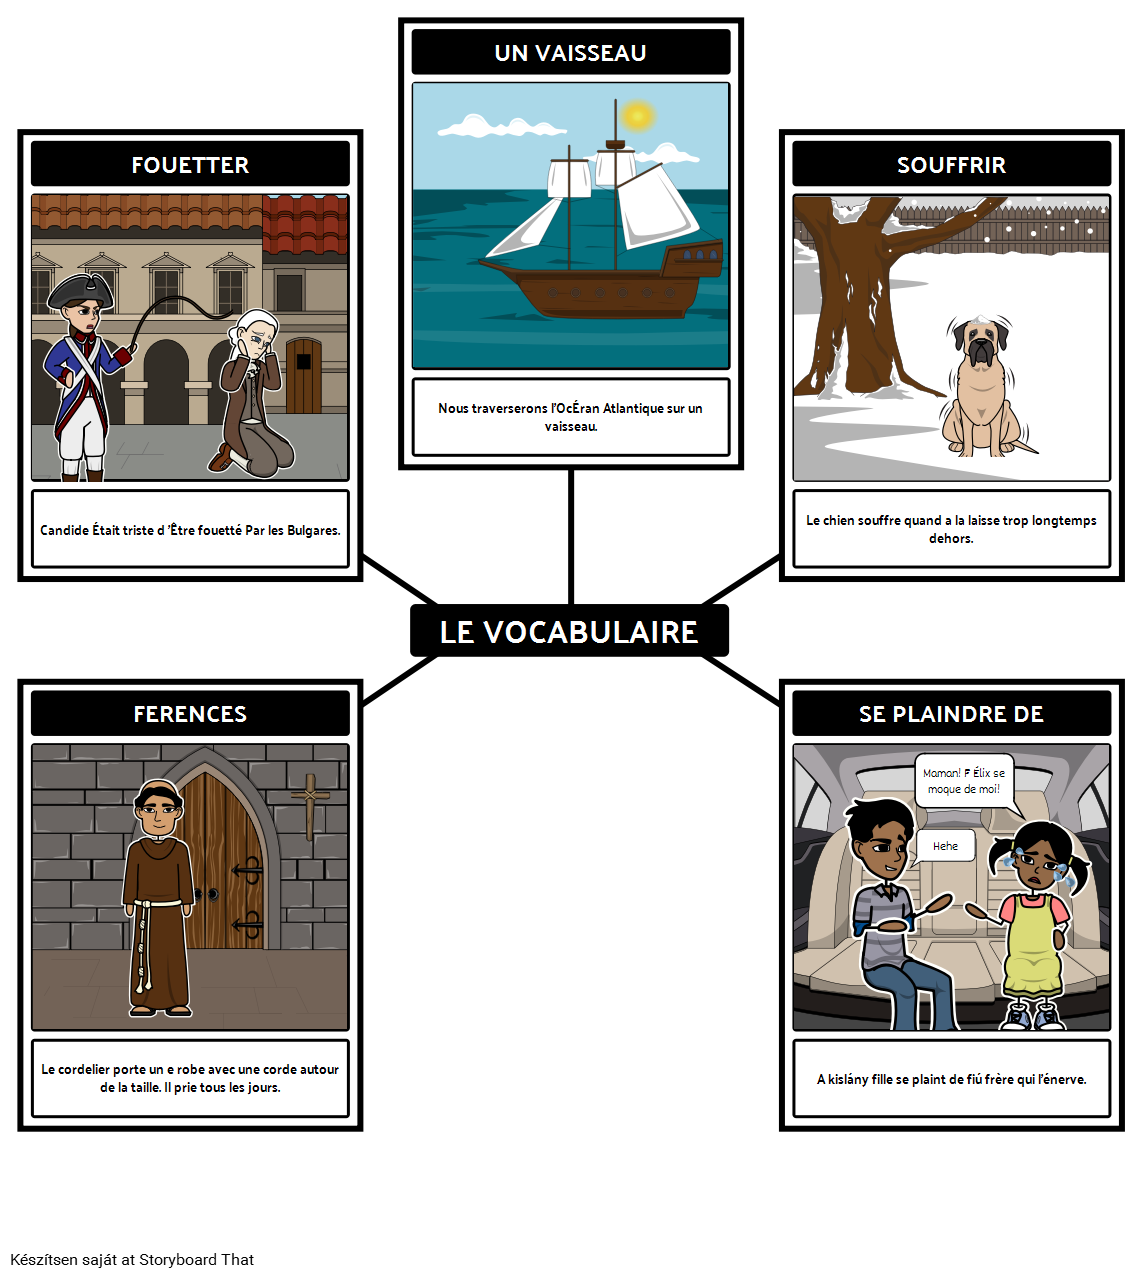 Candide: Le vocabulaire